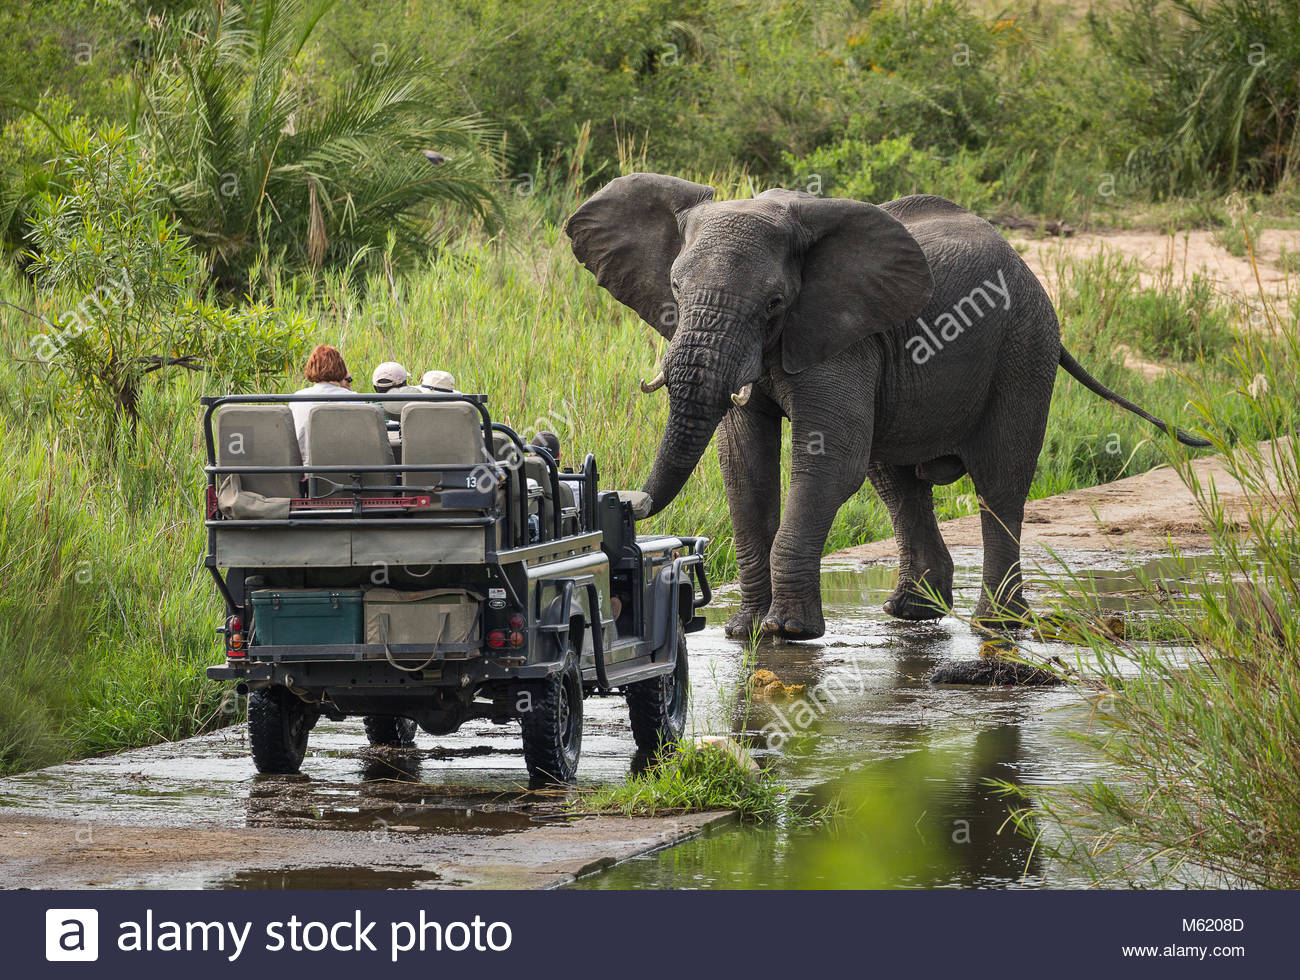 A large bull African elephant, Loxodonta africana, stands defiantly in front of a safari vehicle. - Stock Image